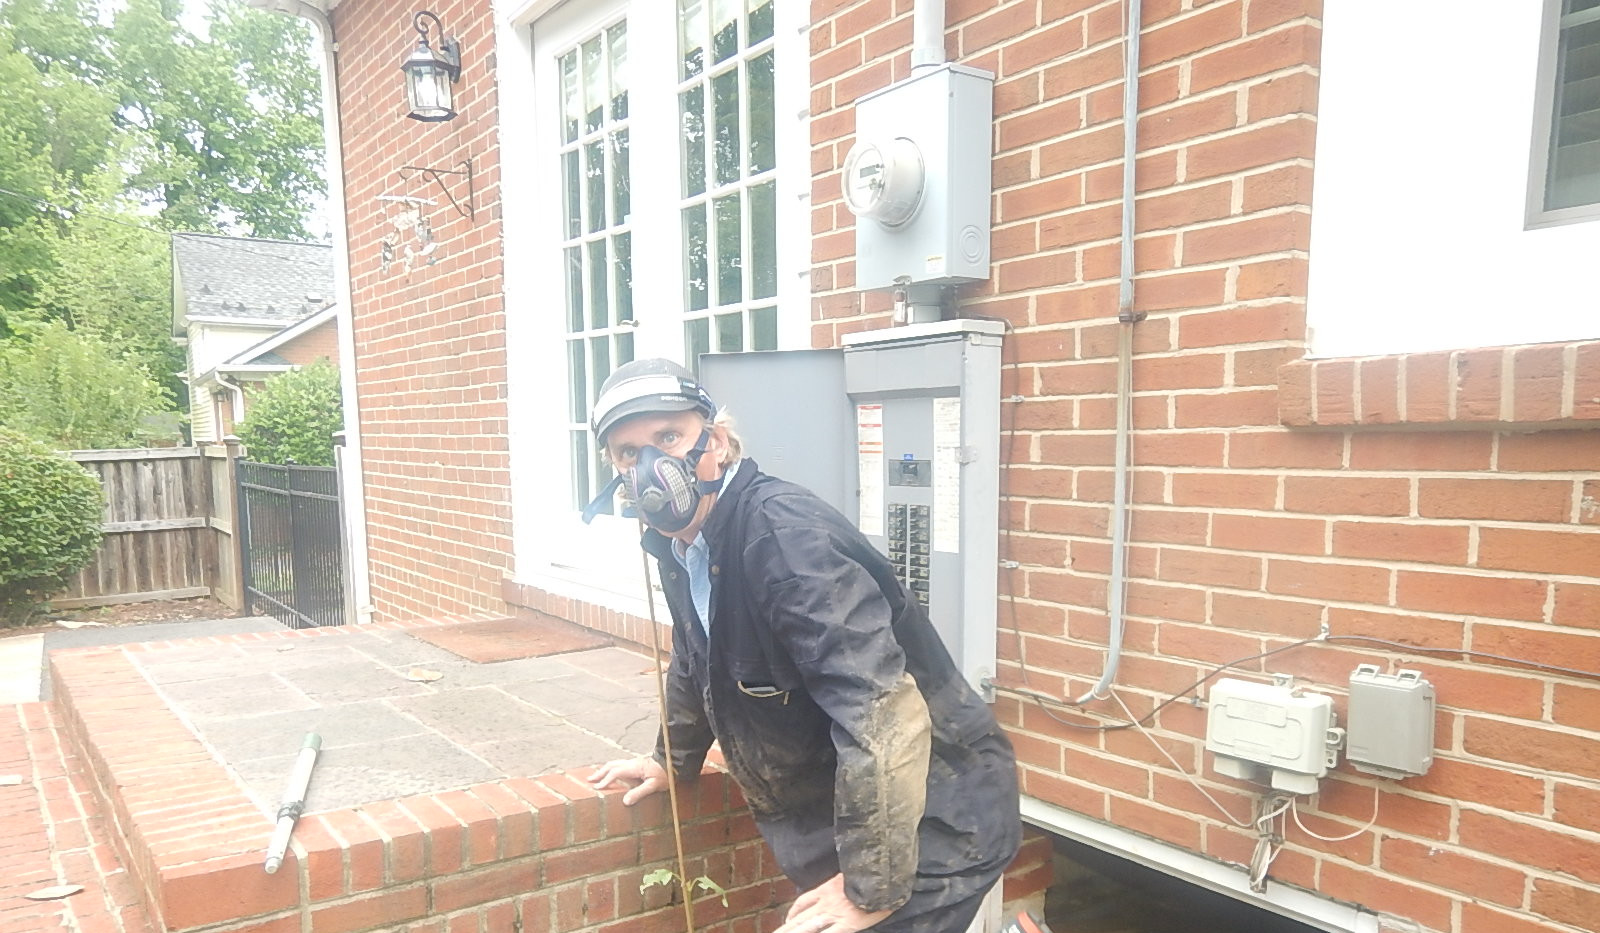 Inspector Michael with Home Vue Inspecti